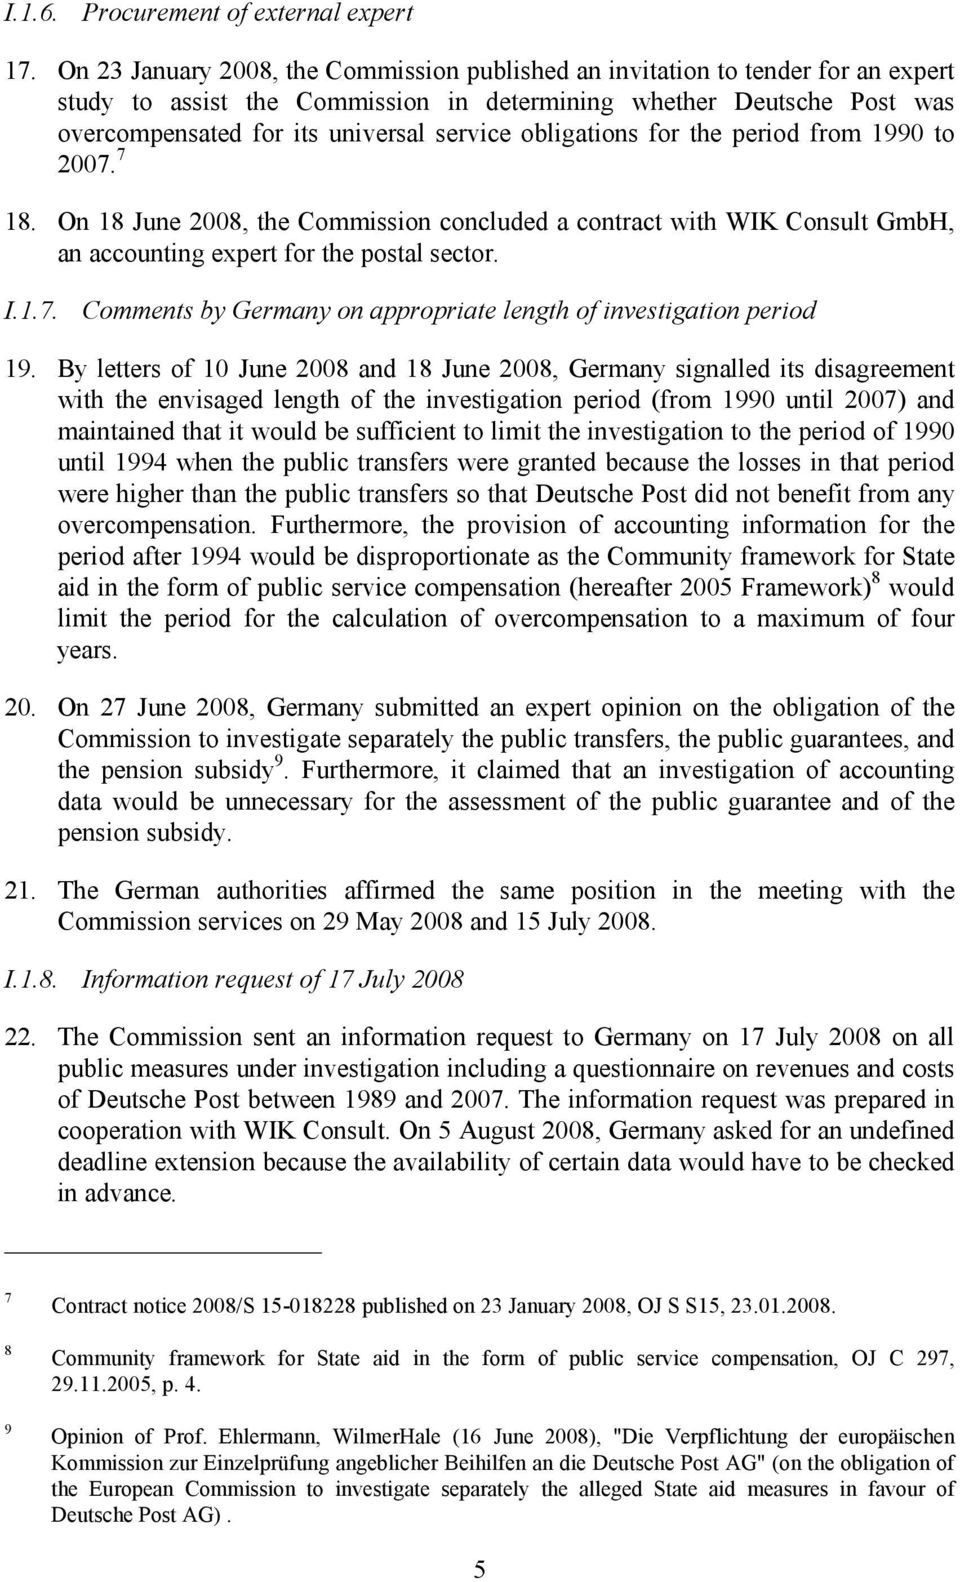 obligations for the period from 1990 to 2007. 7 18. On 18 June 2008, the Commission concluded a contract with WIK Consult GmbH, an accounting expert for the postal sector. I.1.7. Comments by Germany on appropriate length of investigation period 19.